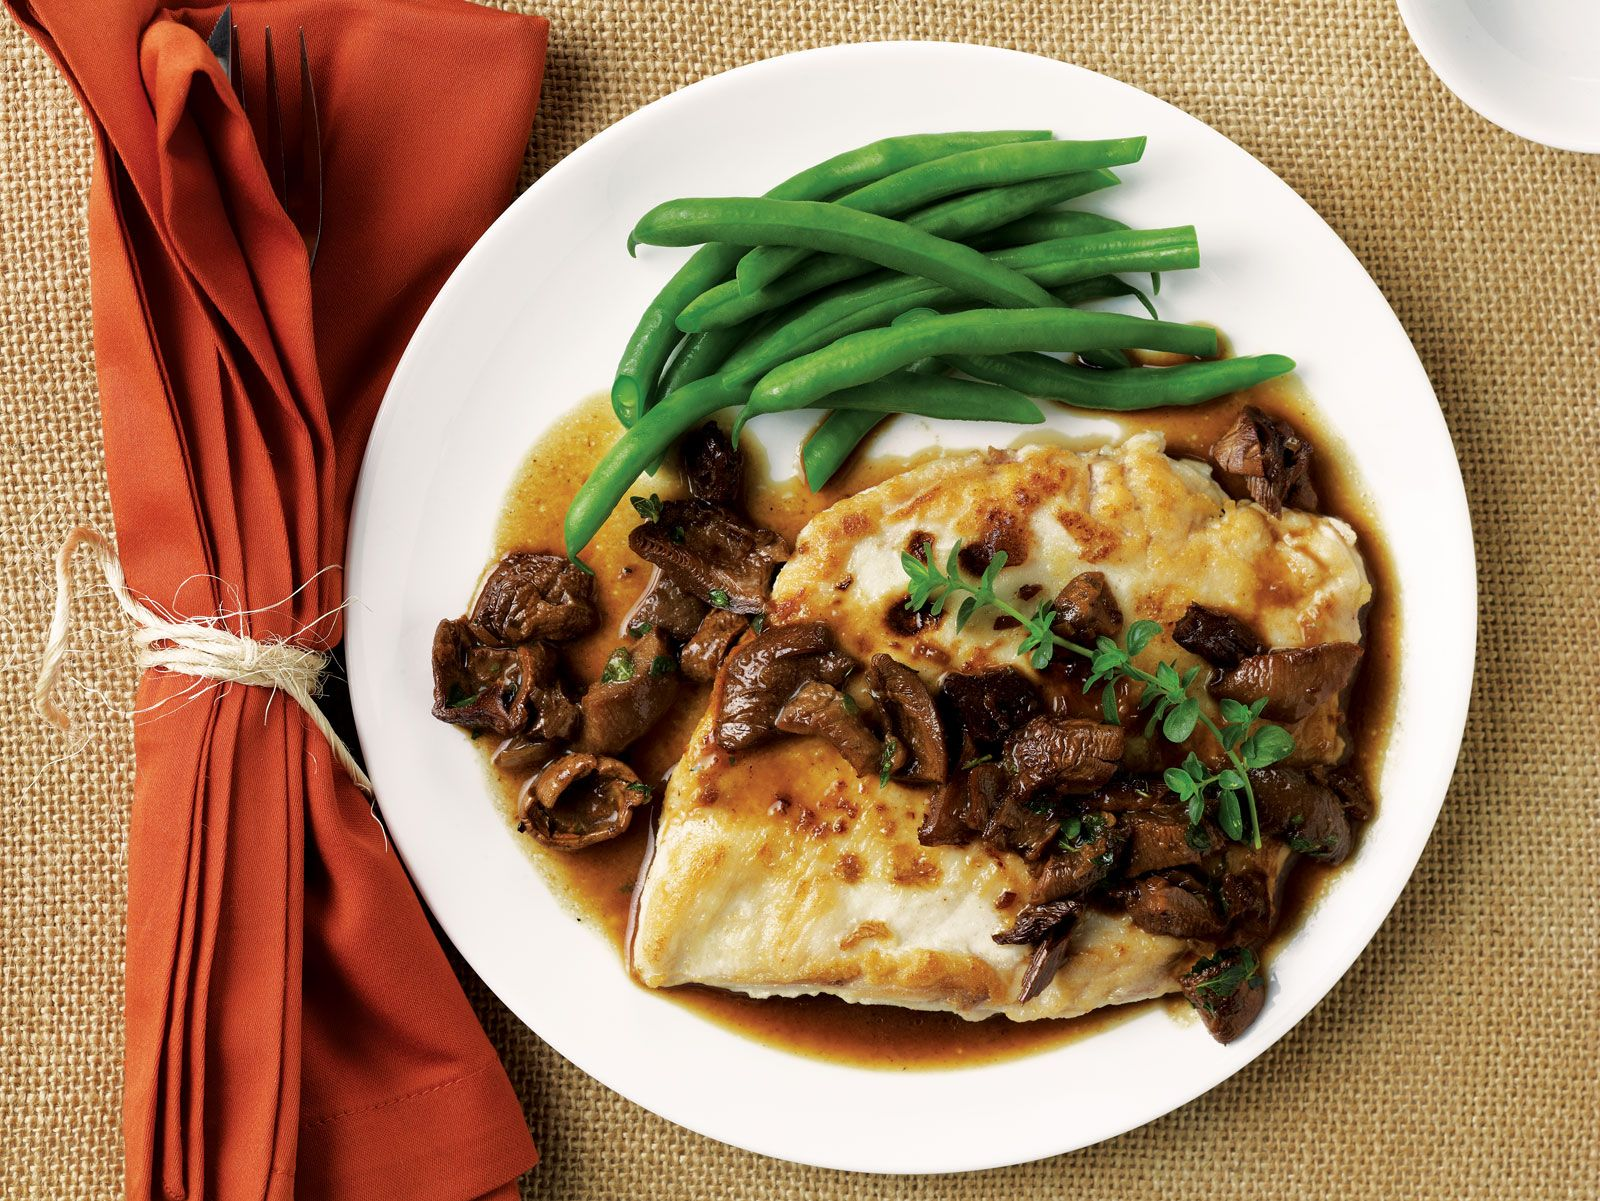 Fall farmhouse dinner menu sauces recipes and dinners elegant chicken recipes for dinner chicken paillards with porcini cider sauce are the centerpiece forumfinder Images